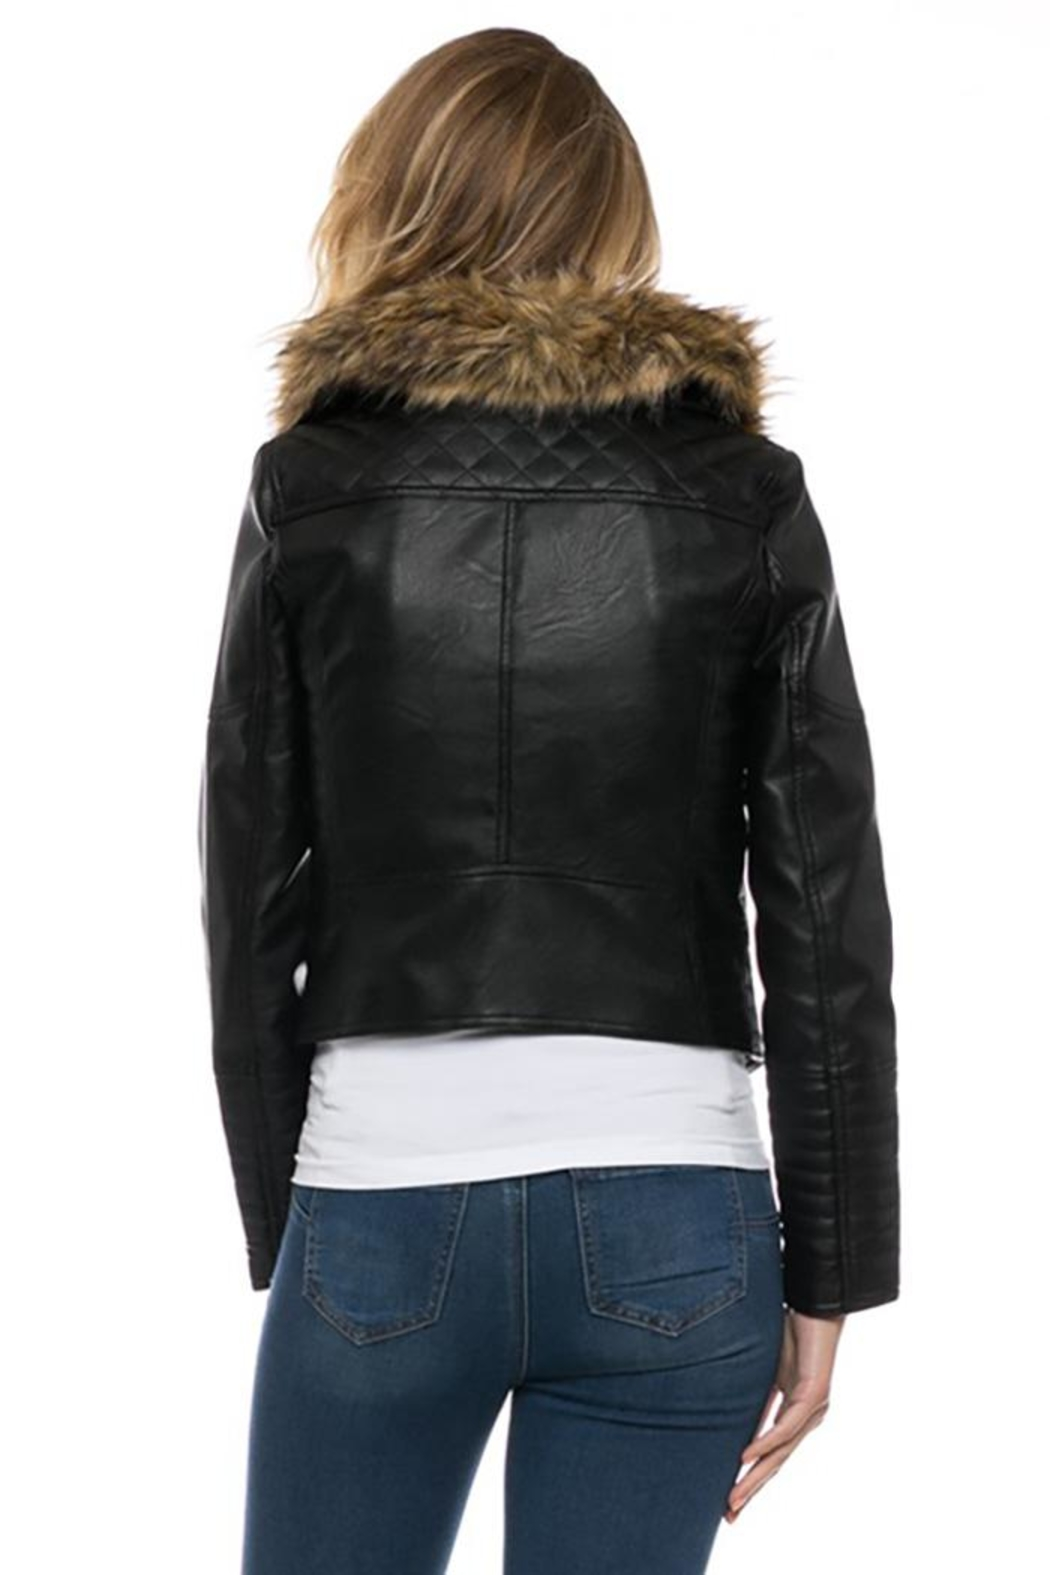 Lovetree Faux Leather Fur-Jacket - Side Cropped Image